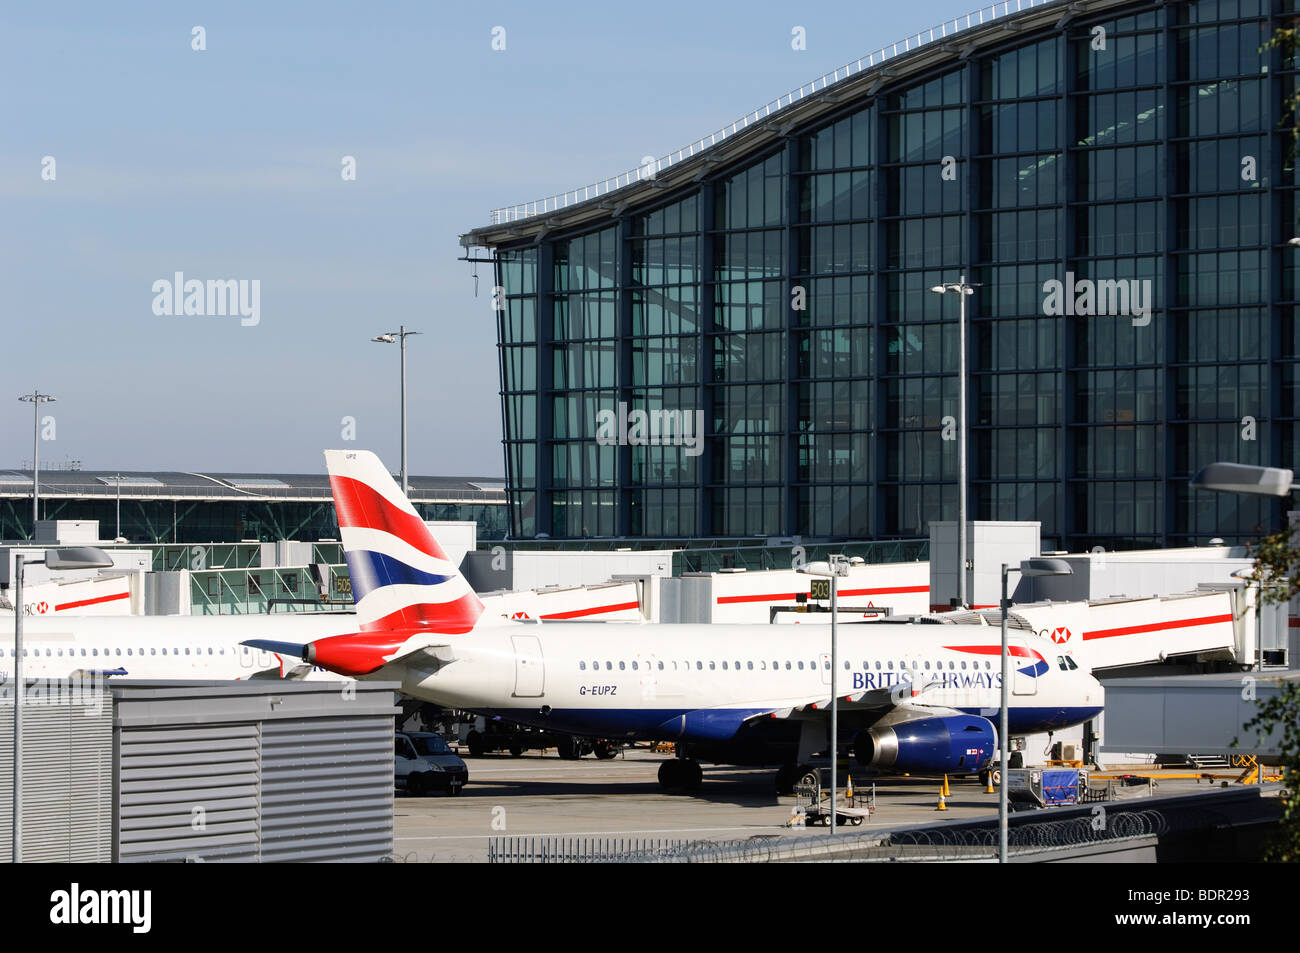 British Airways Airbus A320 in front of Terminal 5, London Heathrow Airport, UK. - Stock Image